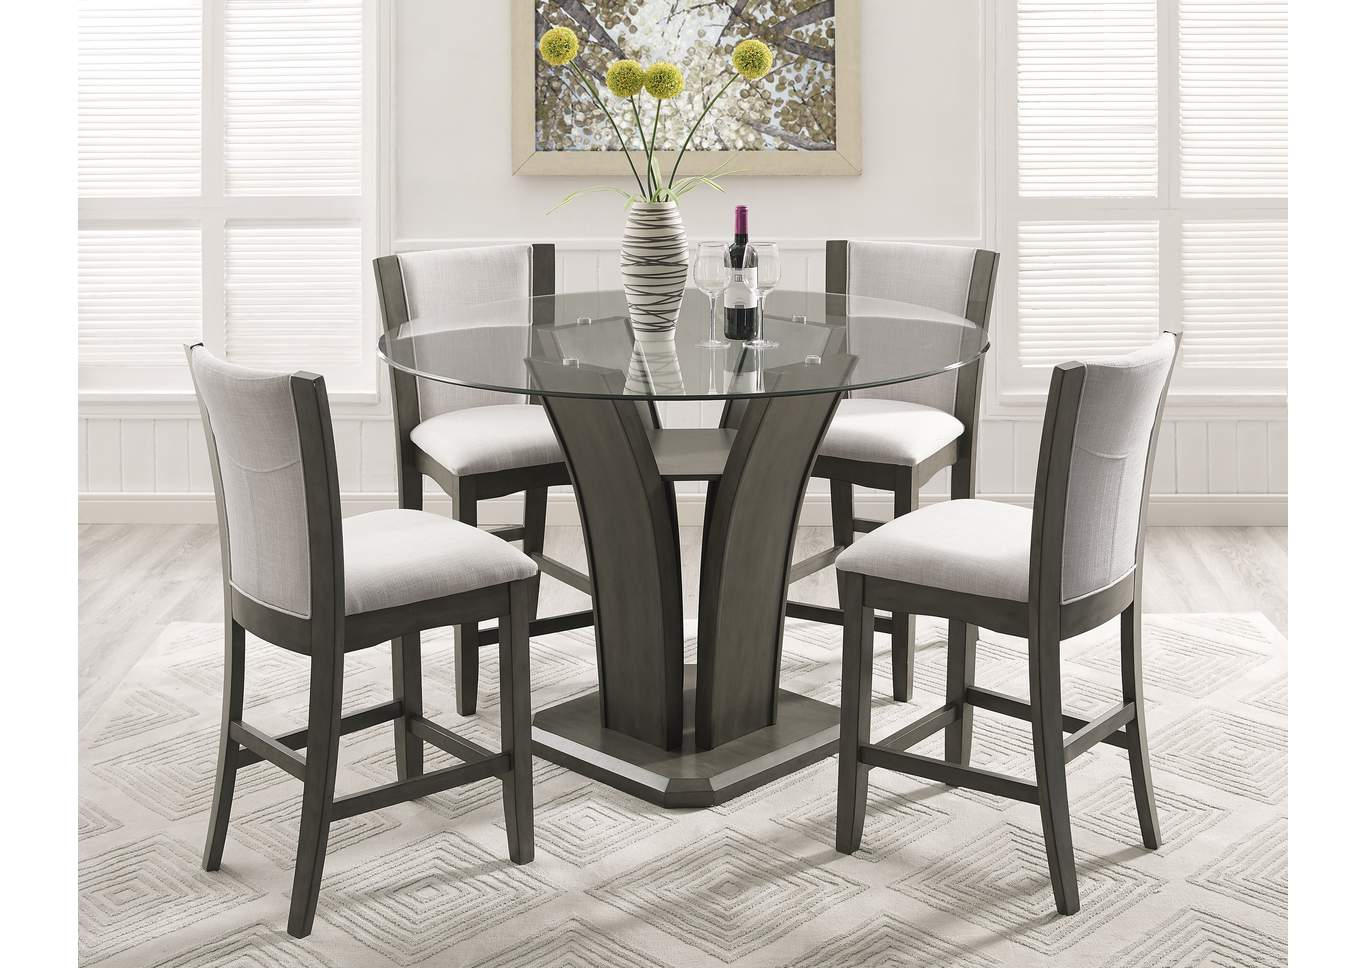 Camelia Gray Counter Height Table W/4 Side Chairs,Crown Mark